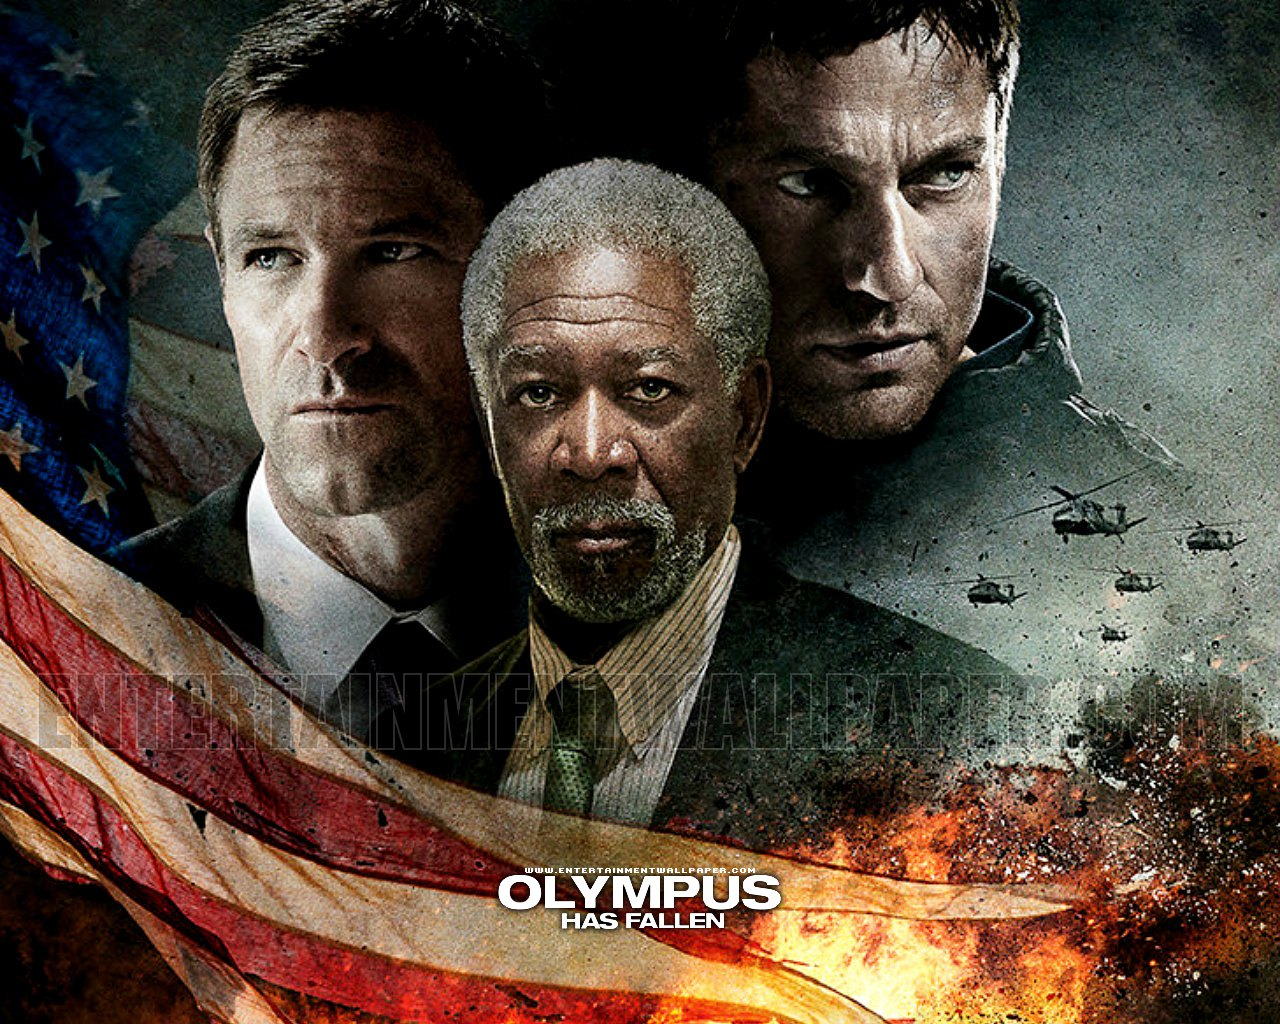 olympus has fallen wallpaper 10038304 size 1280x1024 more olympus has 1280x1024